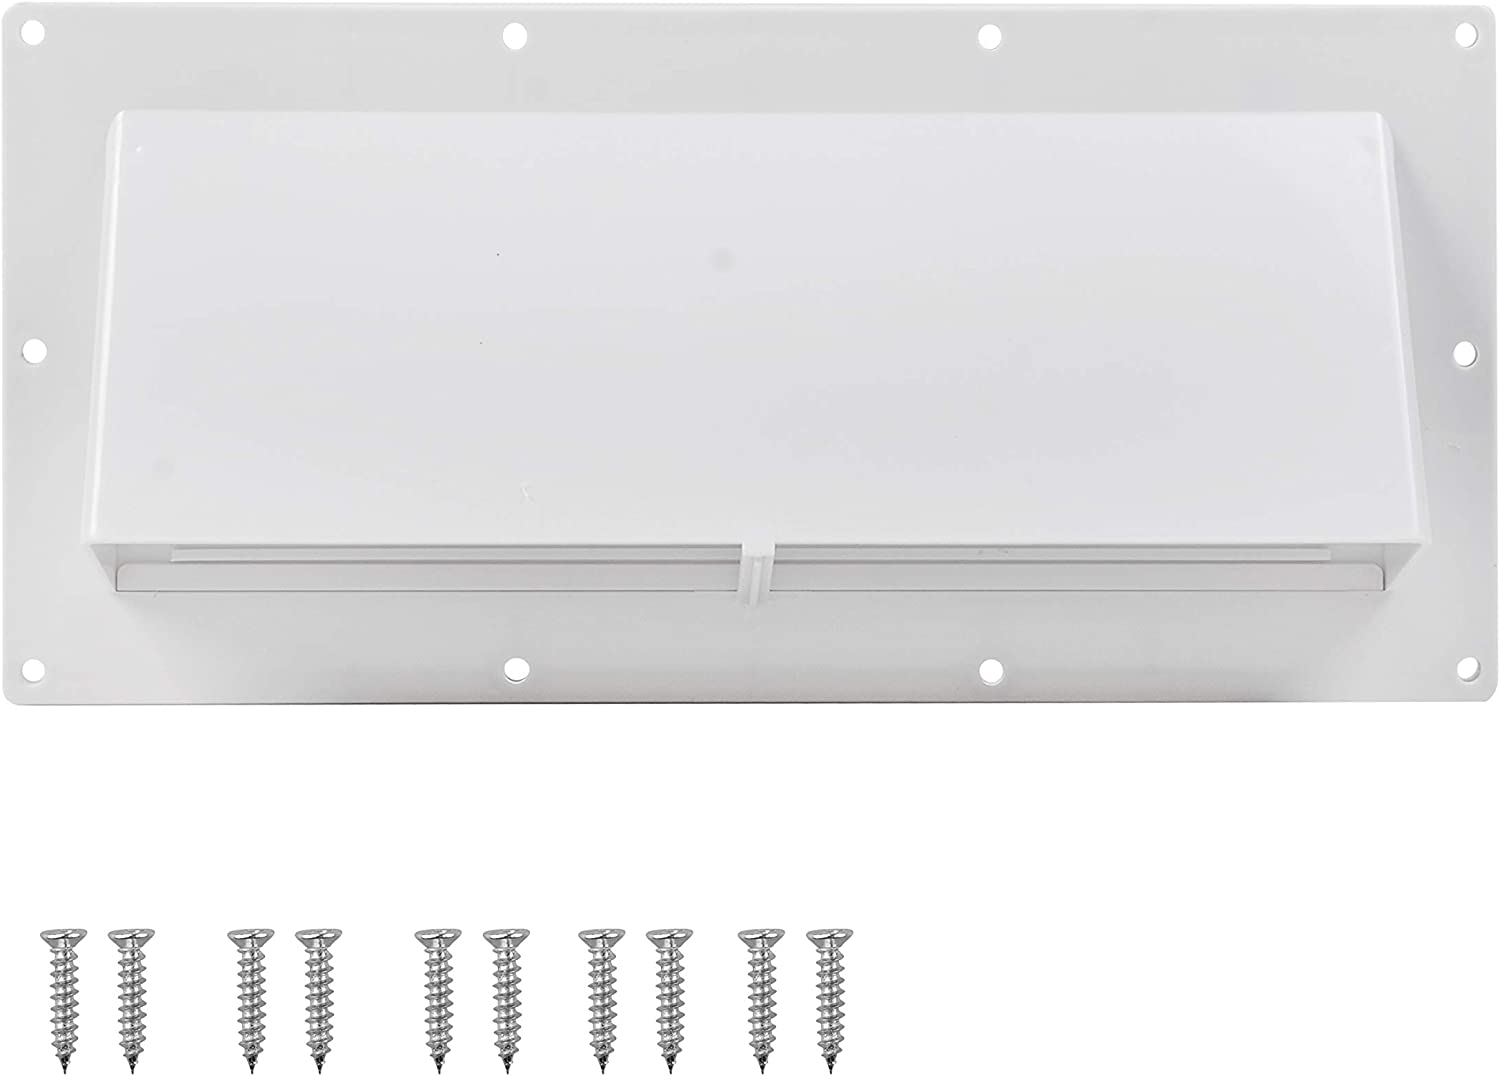 RVGUARD RV Range Hood Exhaust Vent Cover White for Motorhome Trailer (Include 10Pcs Screws)